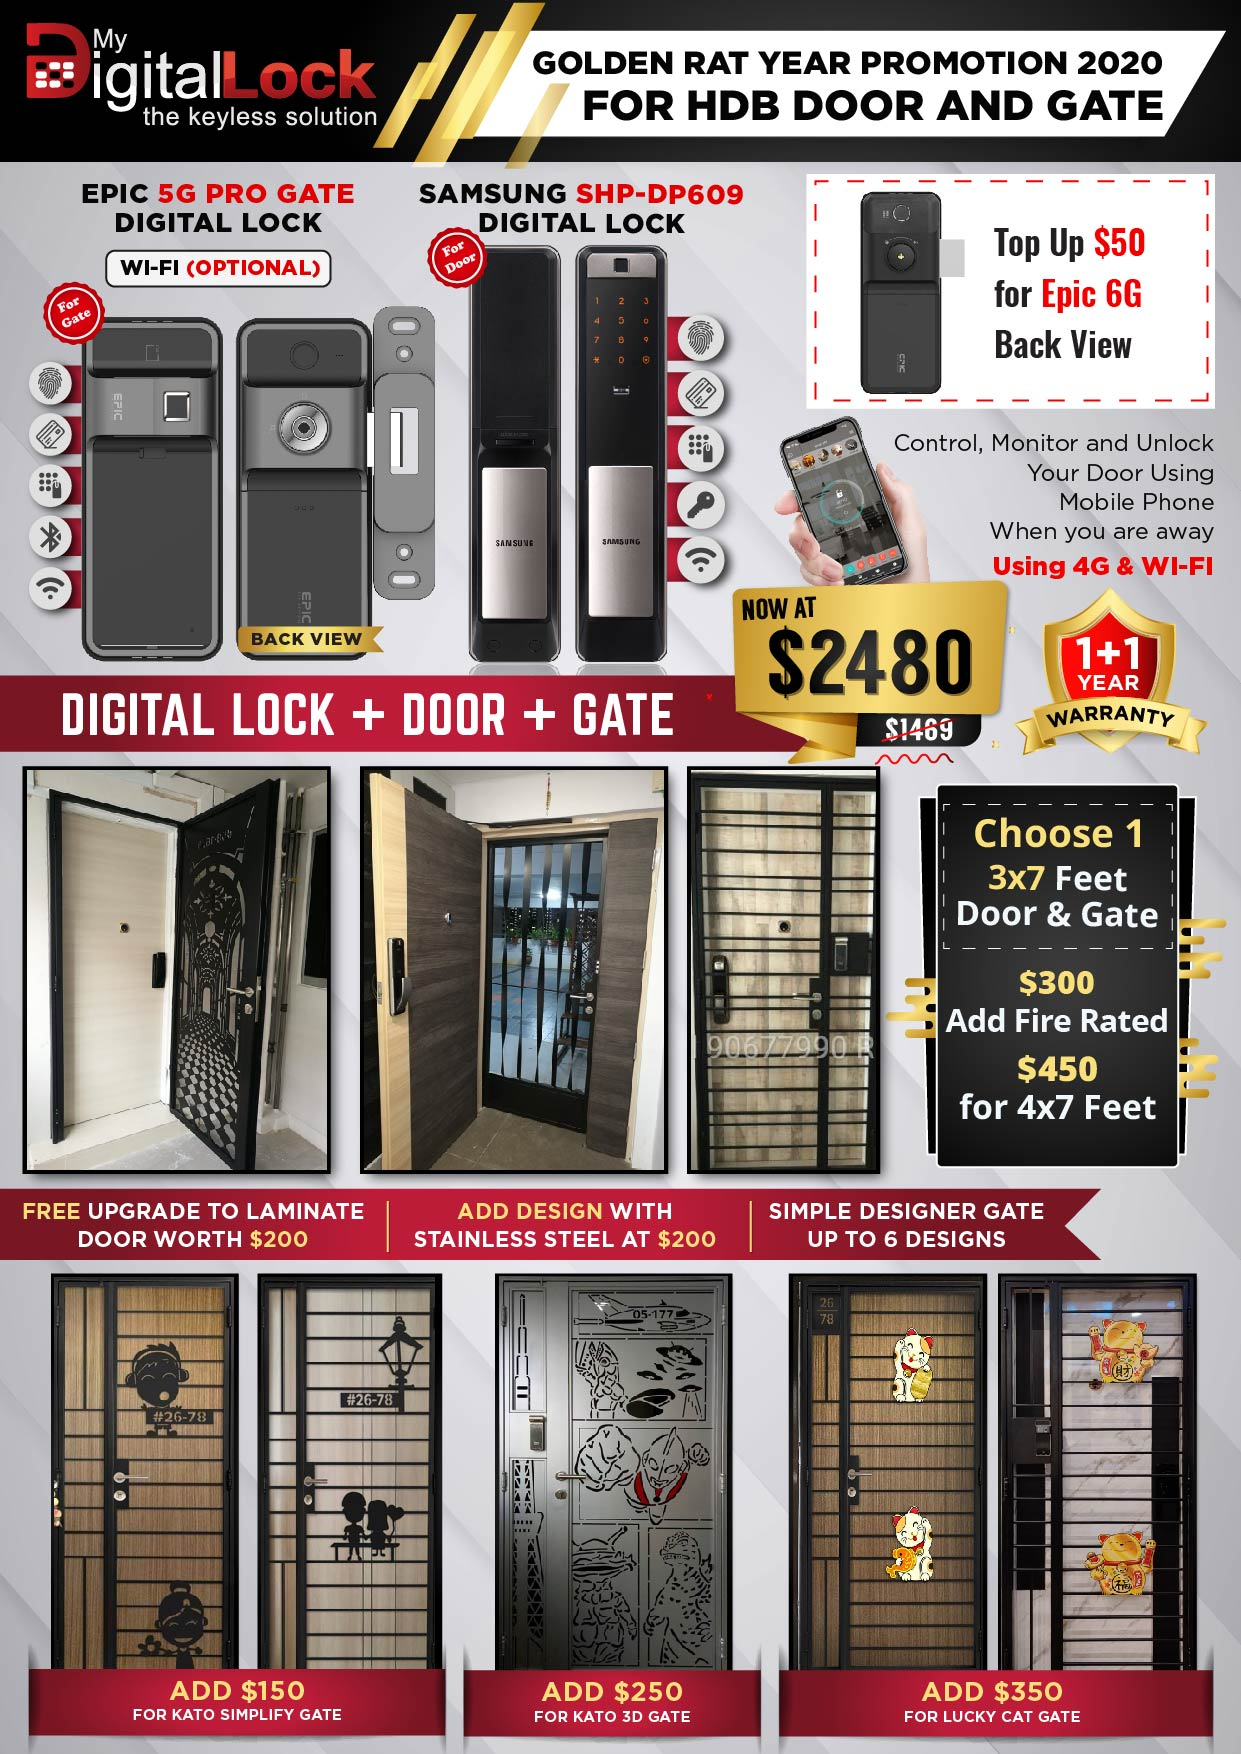 Golden-Rat-Year-HDB-Door-and-Gate-Promotion-with-EPIC-5G-PRO-and-Samsung-SHP-DP609-